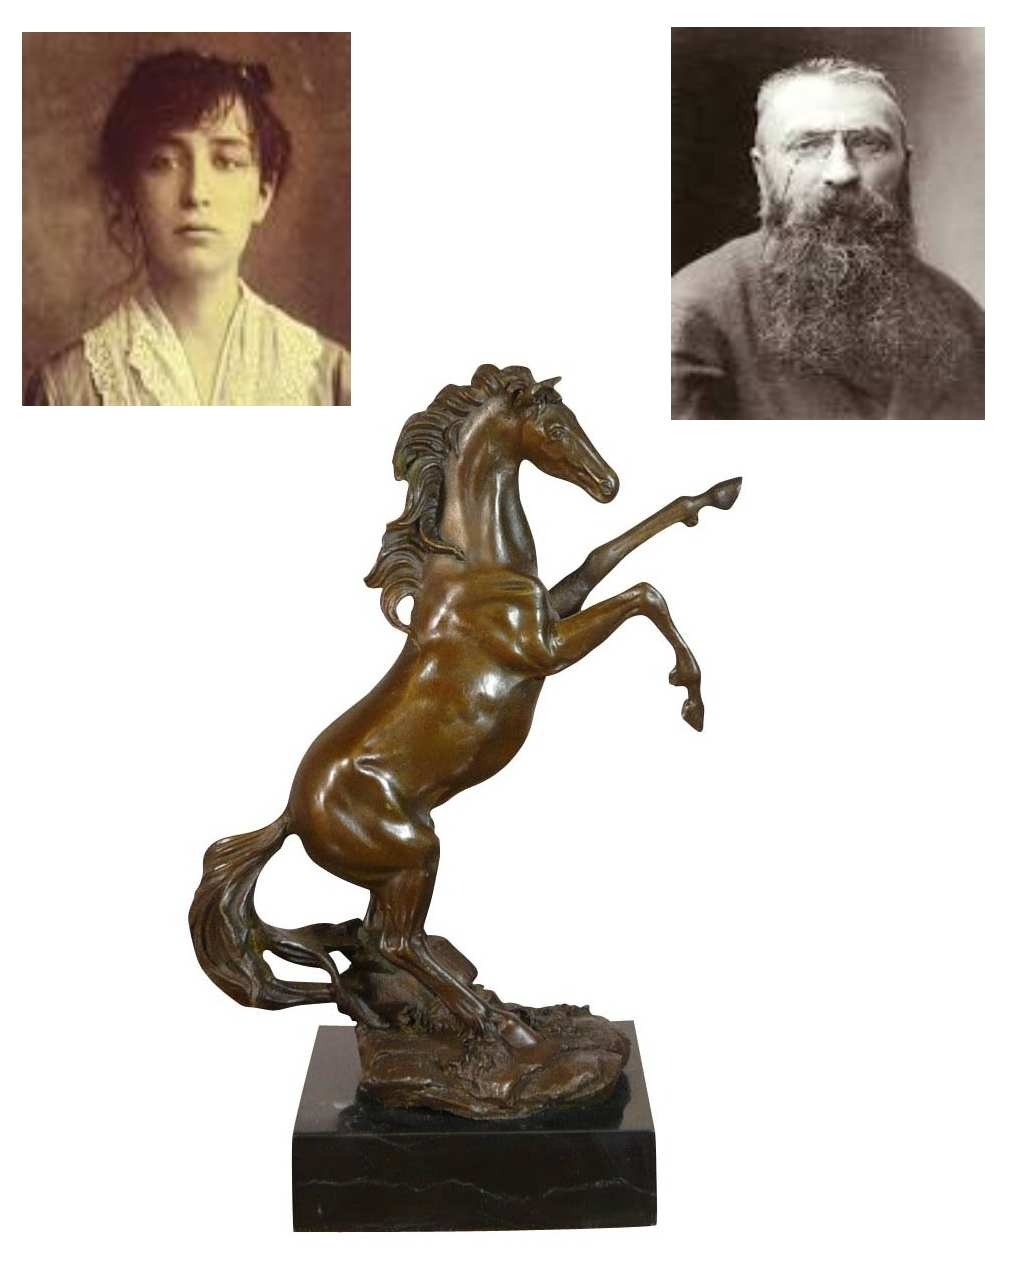 The ten most famous bronze sculpture and artists of the 19th century